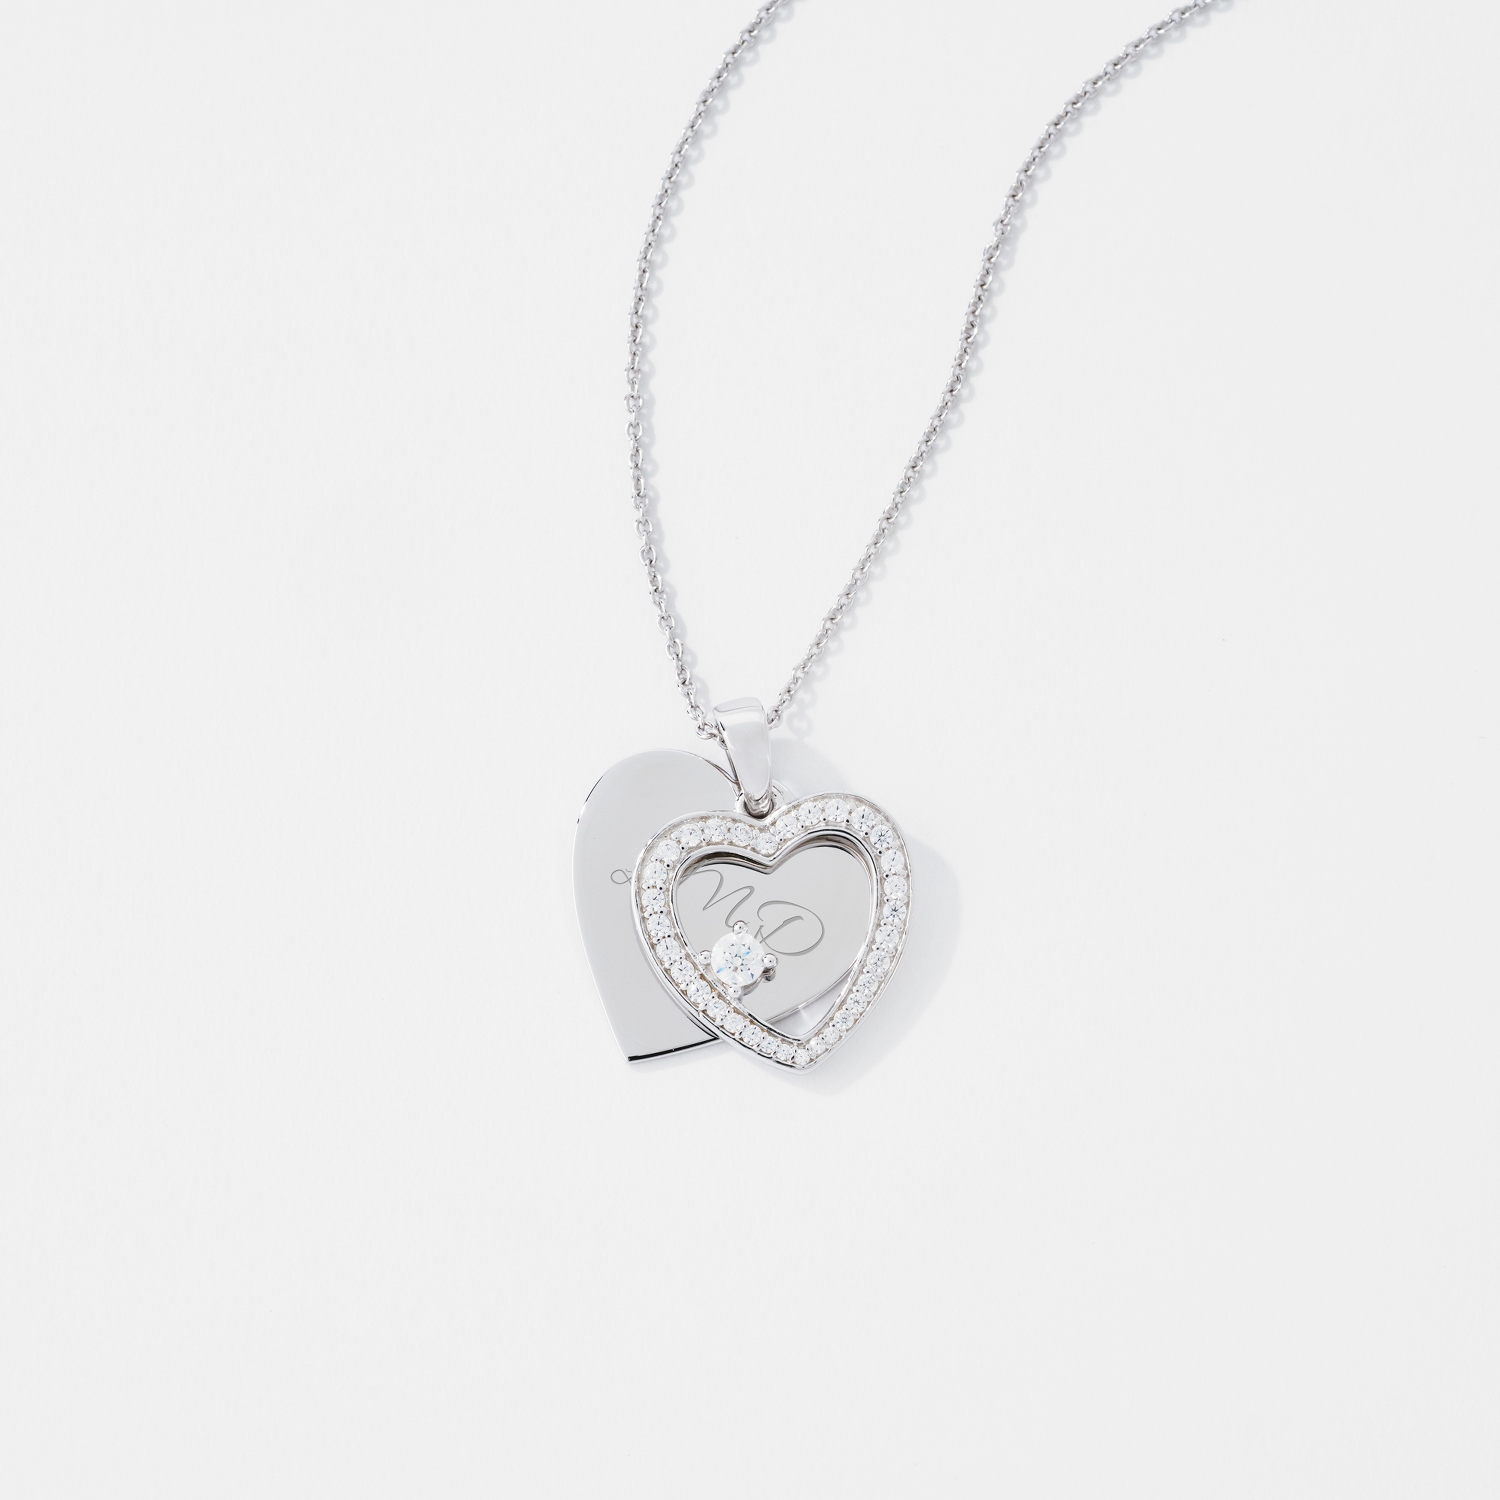 shaped crystals pendant double necklace with heart from swarovski